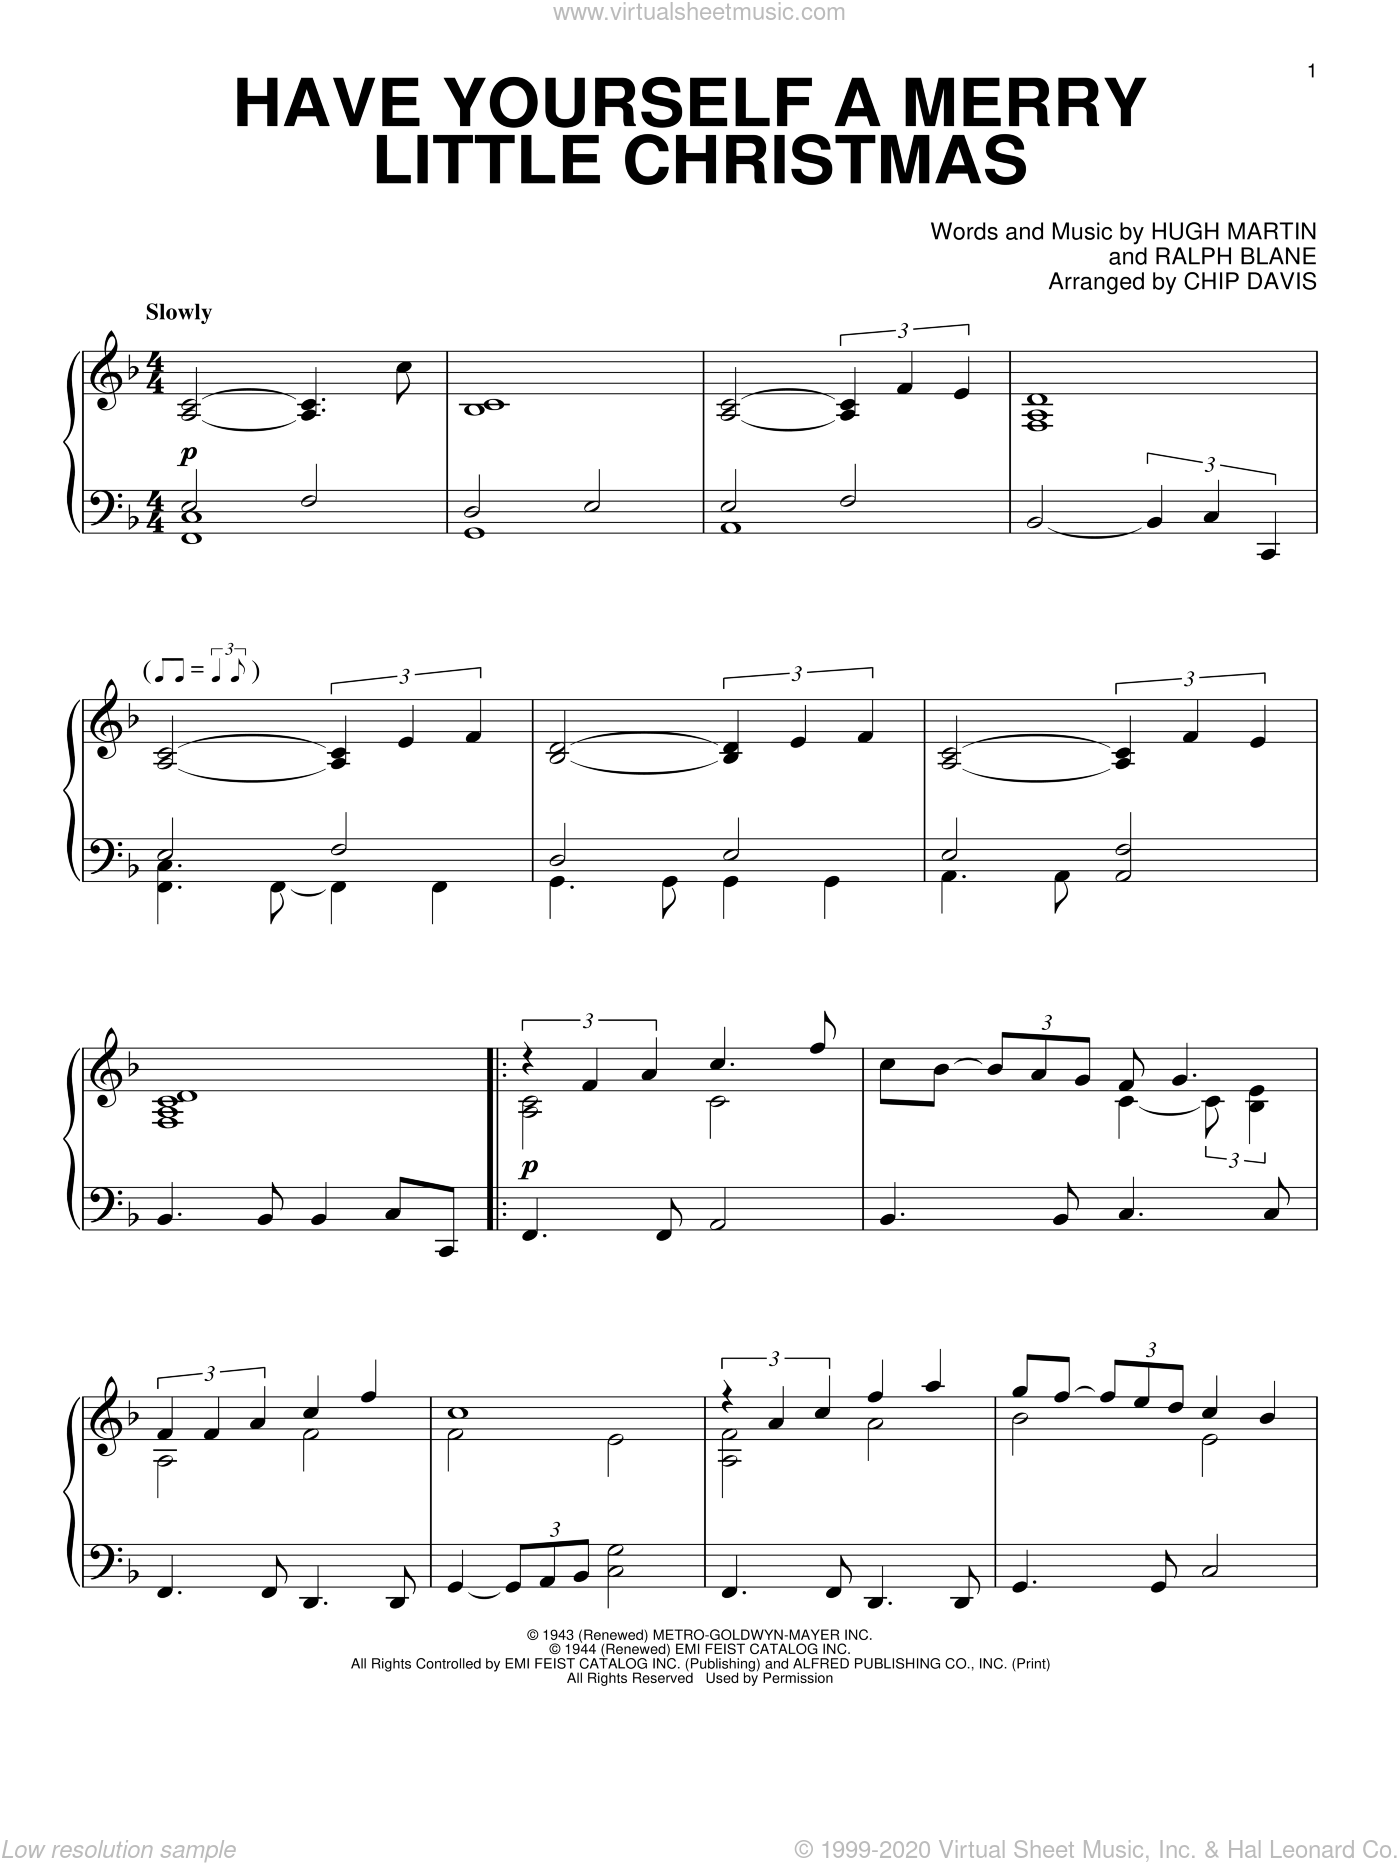 Have Yourself A Merry Little Christmas Piano Music.Steamroller Have Yourself A Merry Little Christmas Sheet Music For Piano Solo